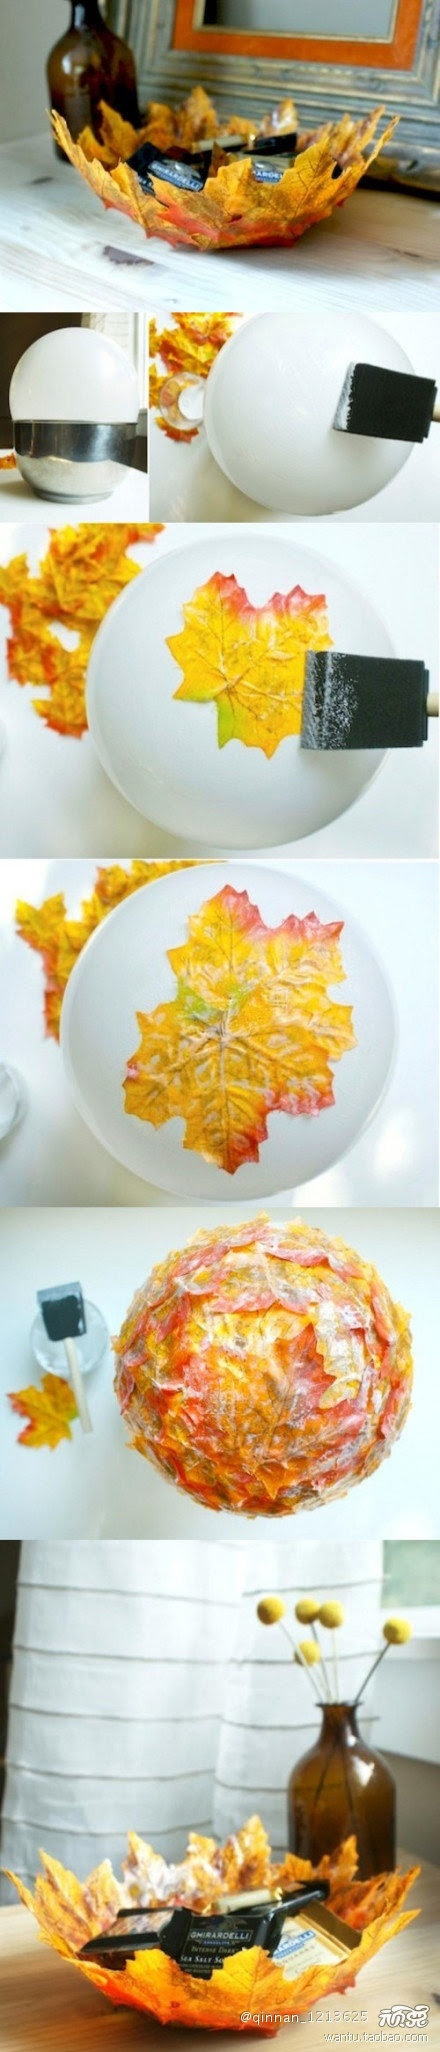 adorable leaf bowl! @K D Eustaquio DiNardo I feel like this is something you would do